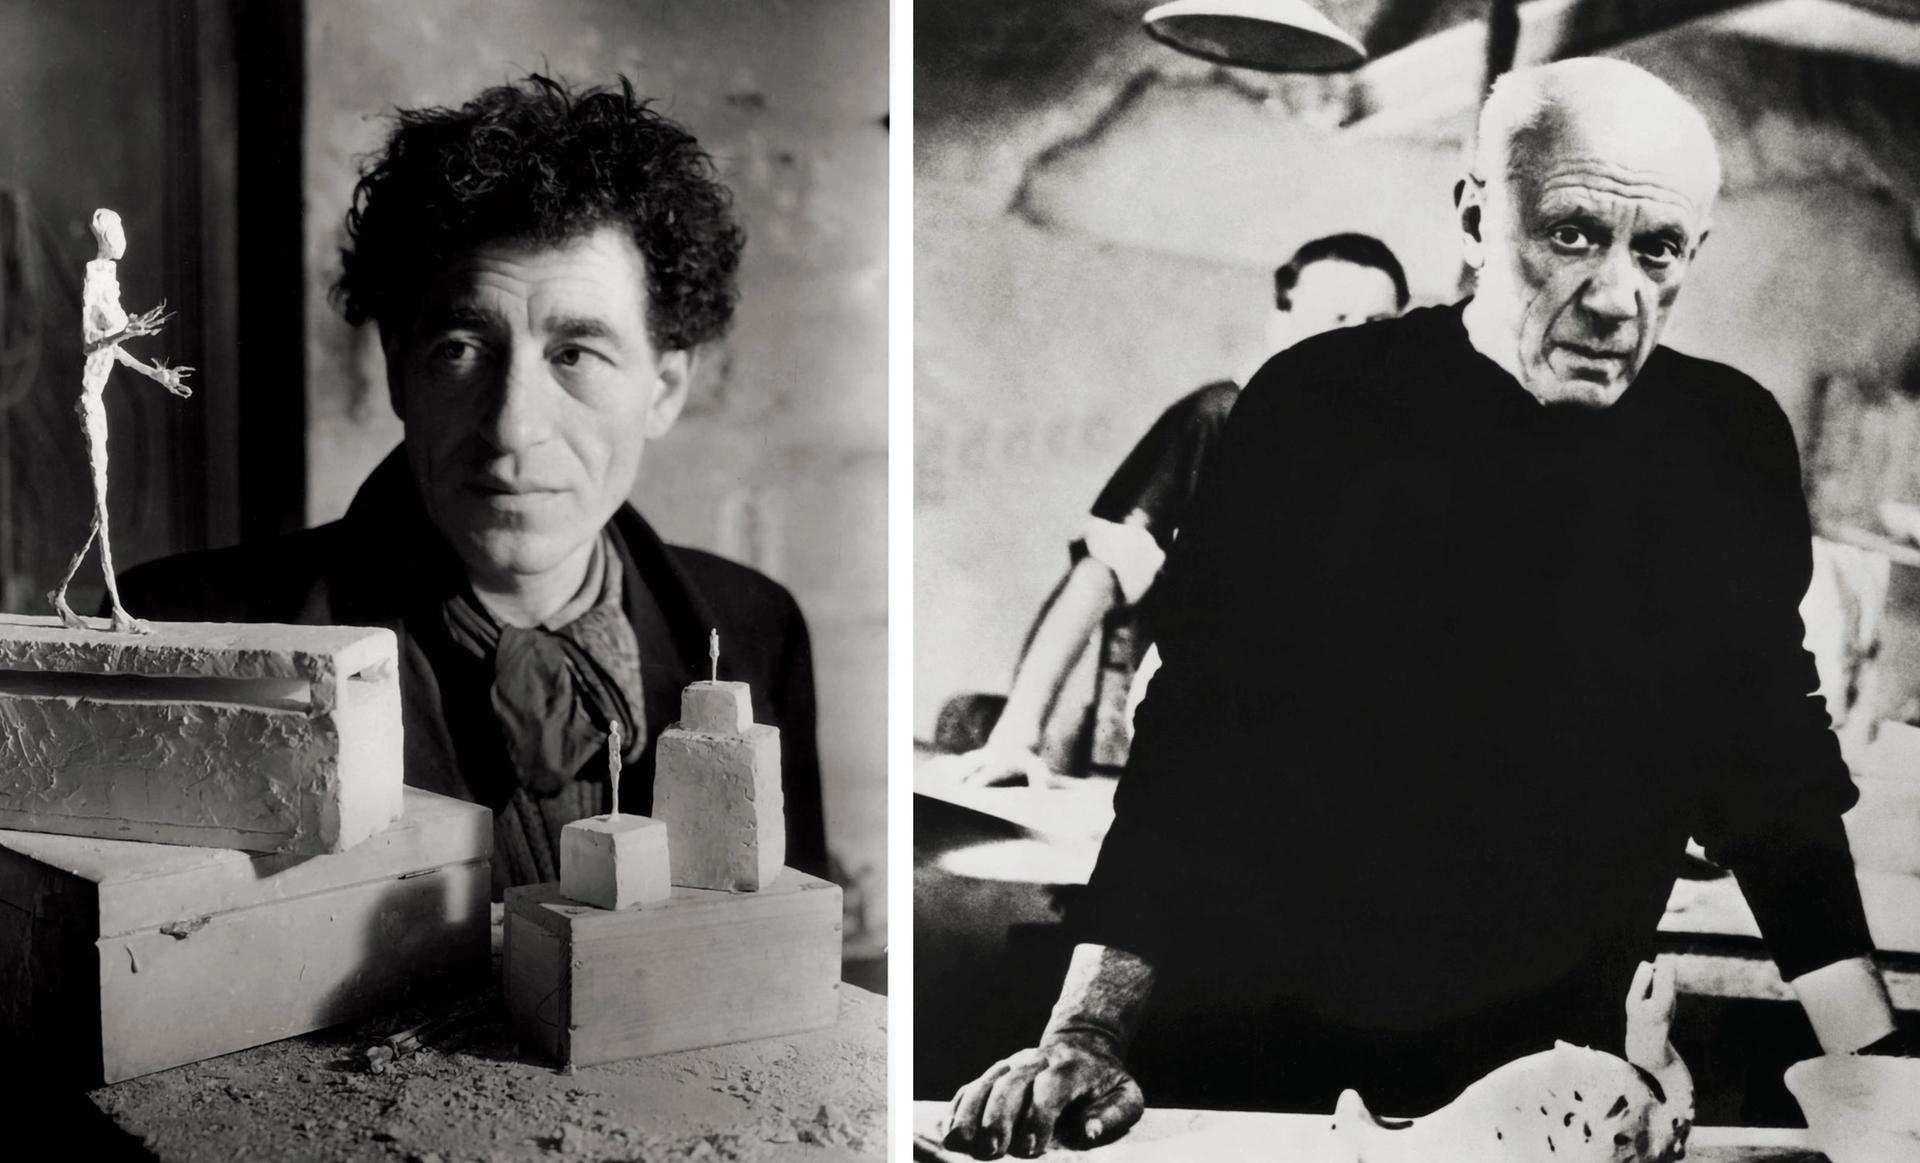 Beijing's 798 Art District is preparing a five-year partnership with the Paris-based institutions dedicated to Alberto Giacometti (left, in 1945) and Pablo Picasso (in 1957) Giacometti: © Emile Savitry. Picasso: George Rinhart/Corbis via Getty Images